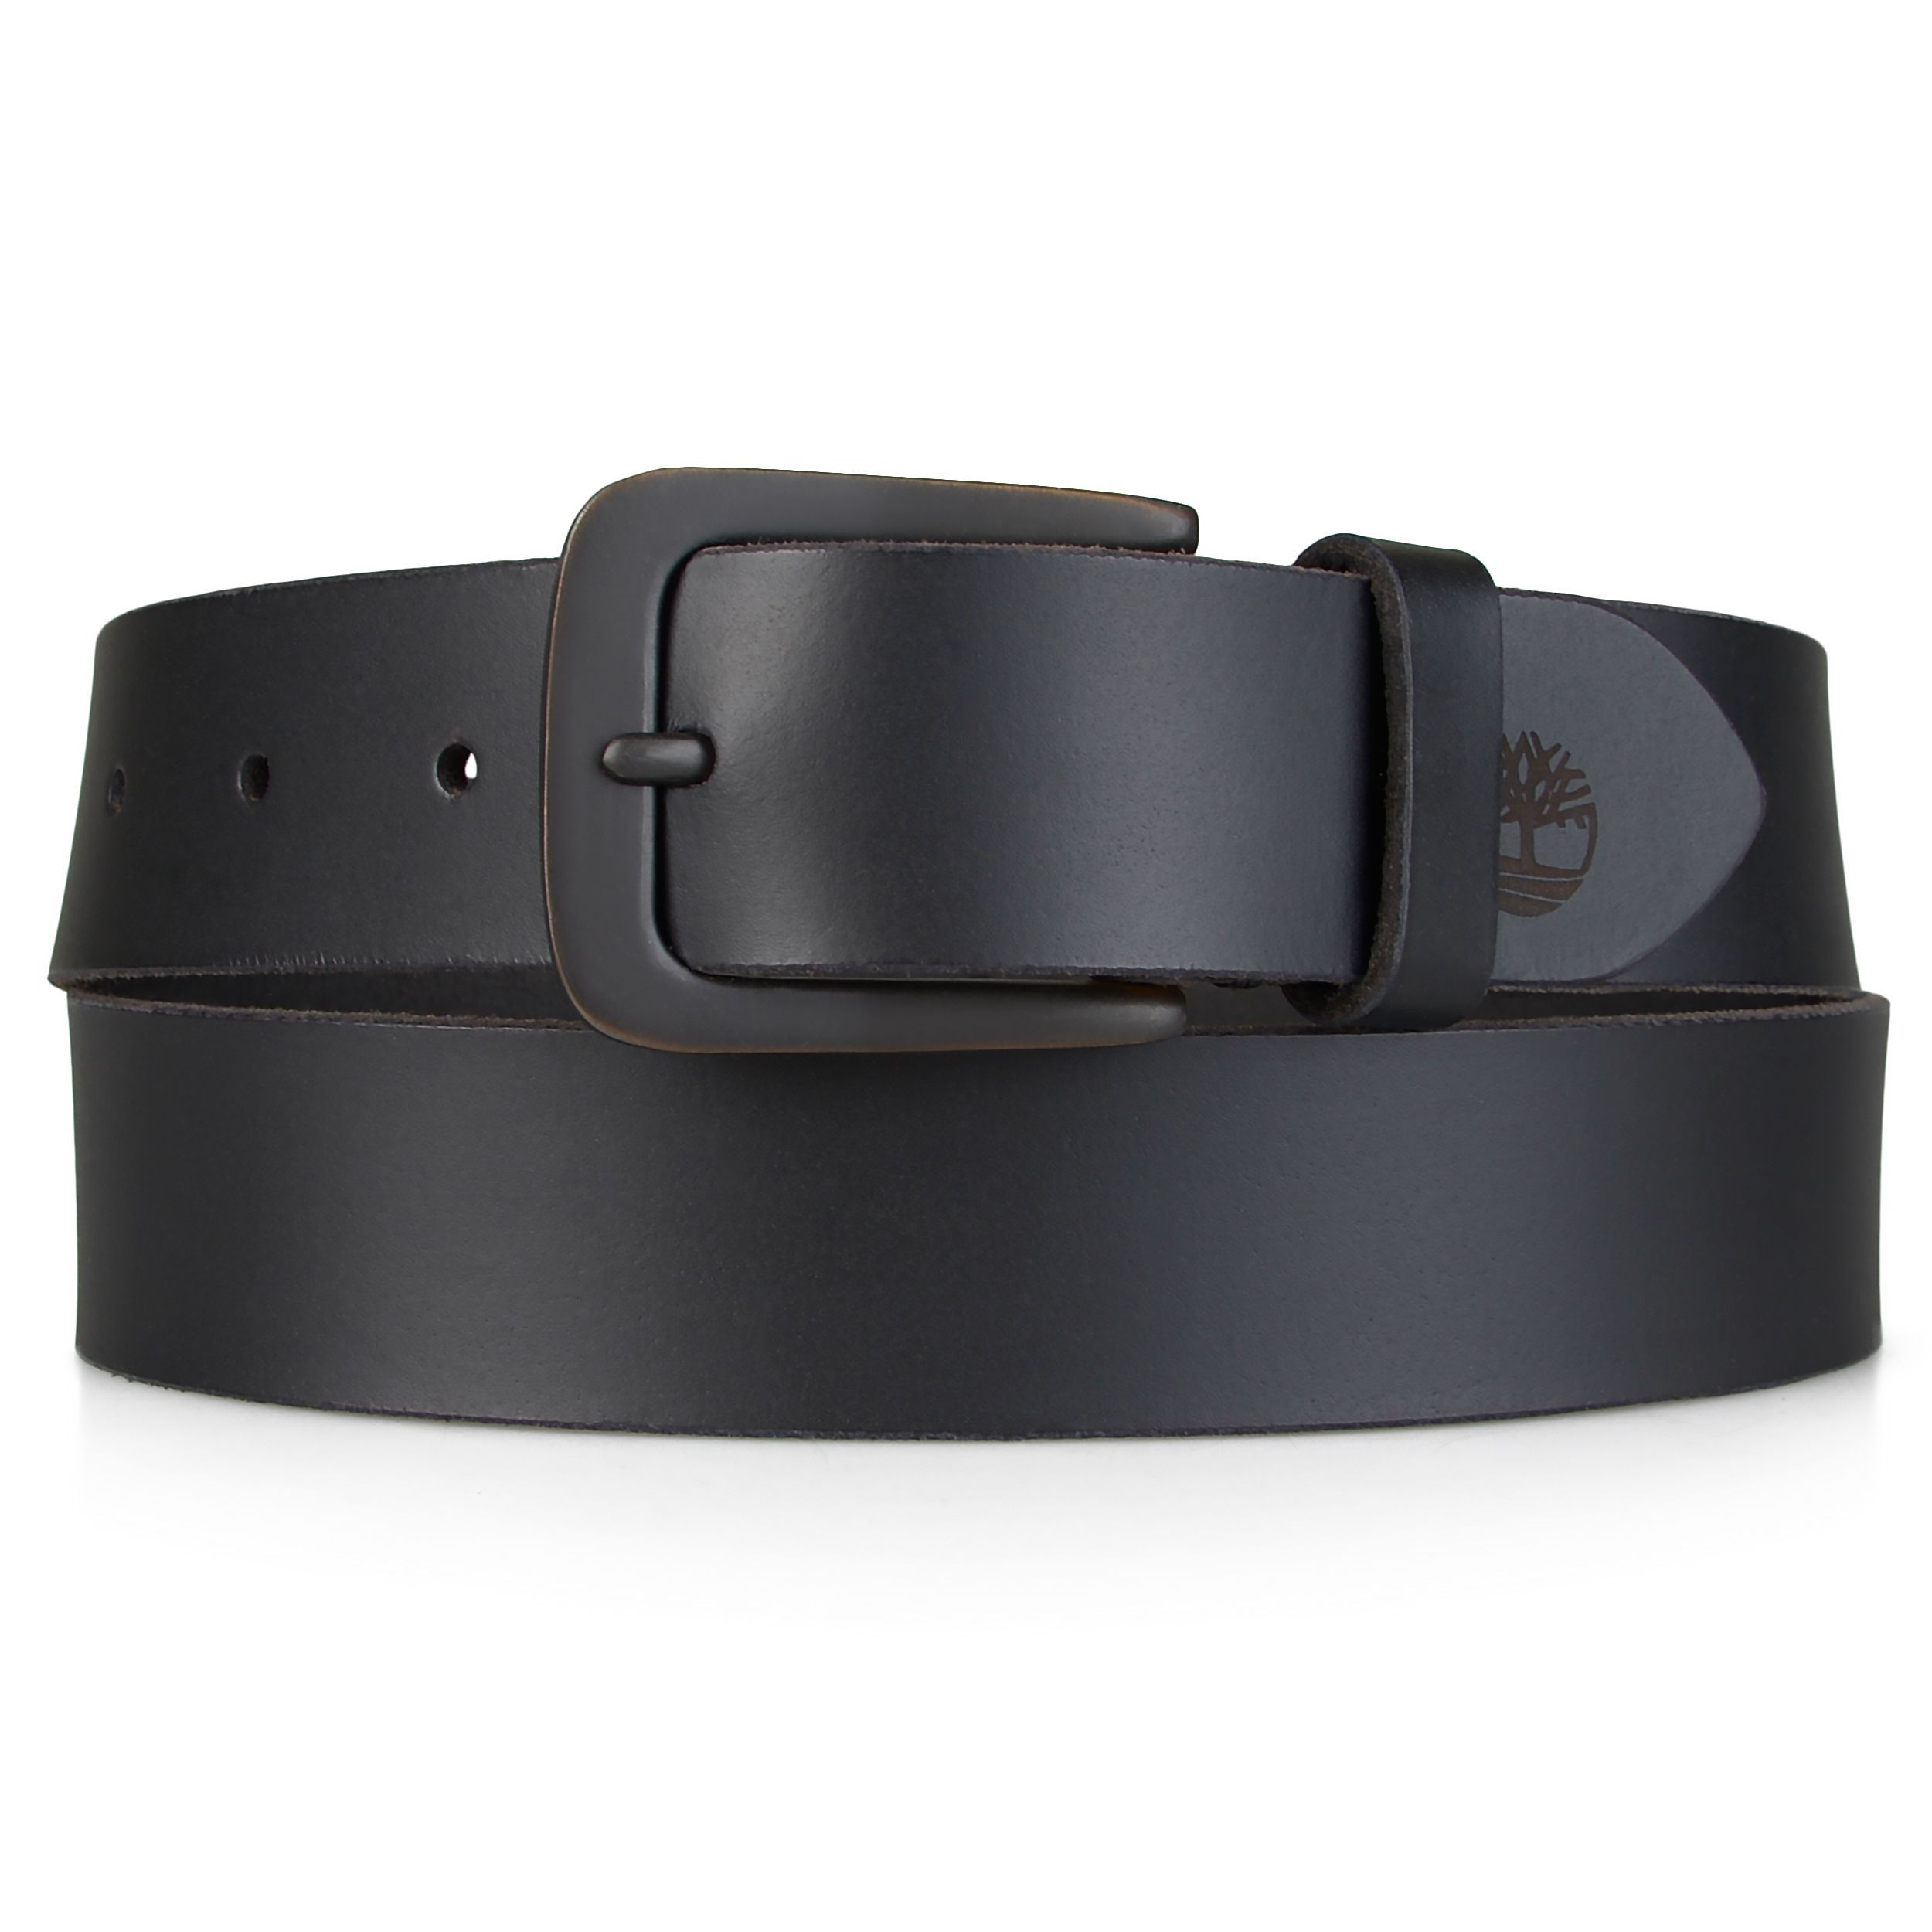 856e4c61643bd7 Timberland Men's Genuine Leather Classic Belt by Timberland | man ...